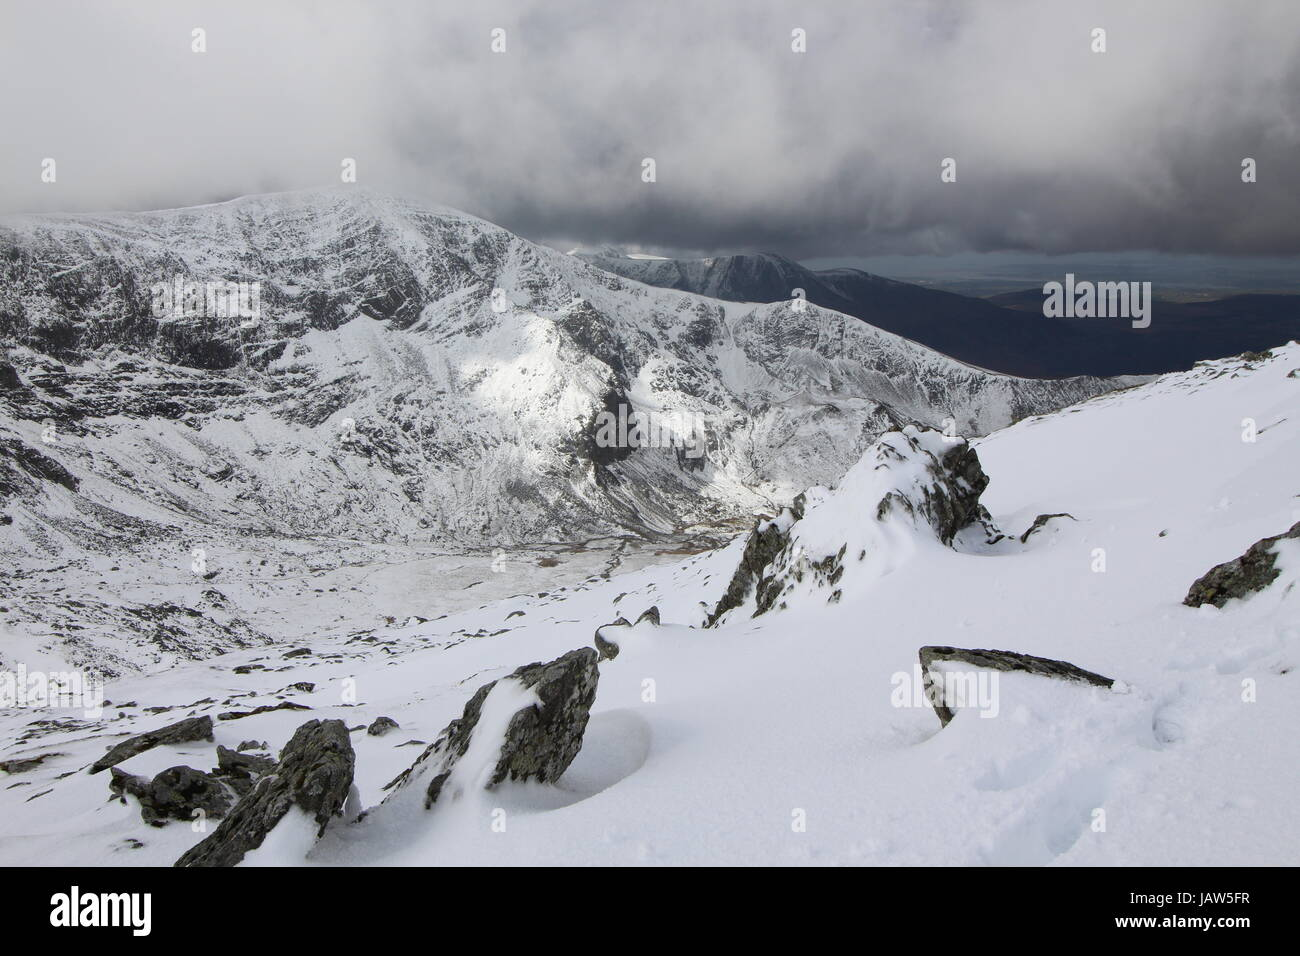 Winter in the mountains of Wales, isolated and Inspired by nature. - Stock Image